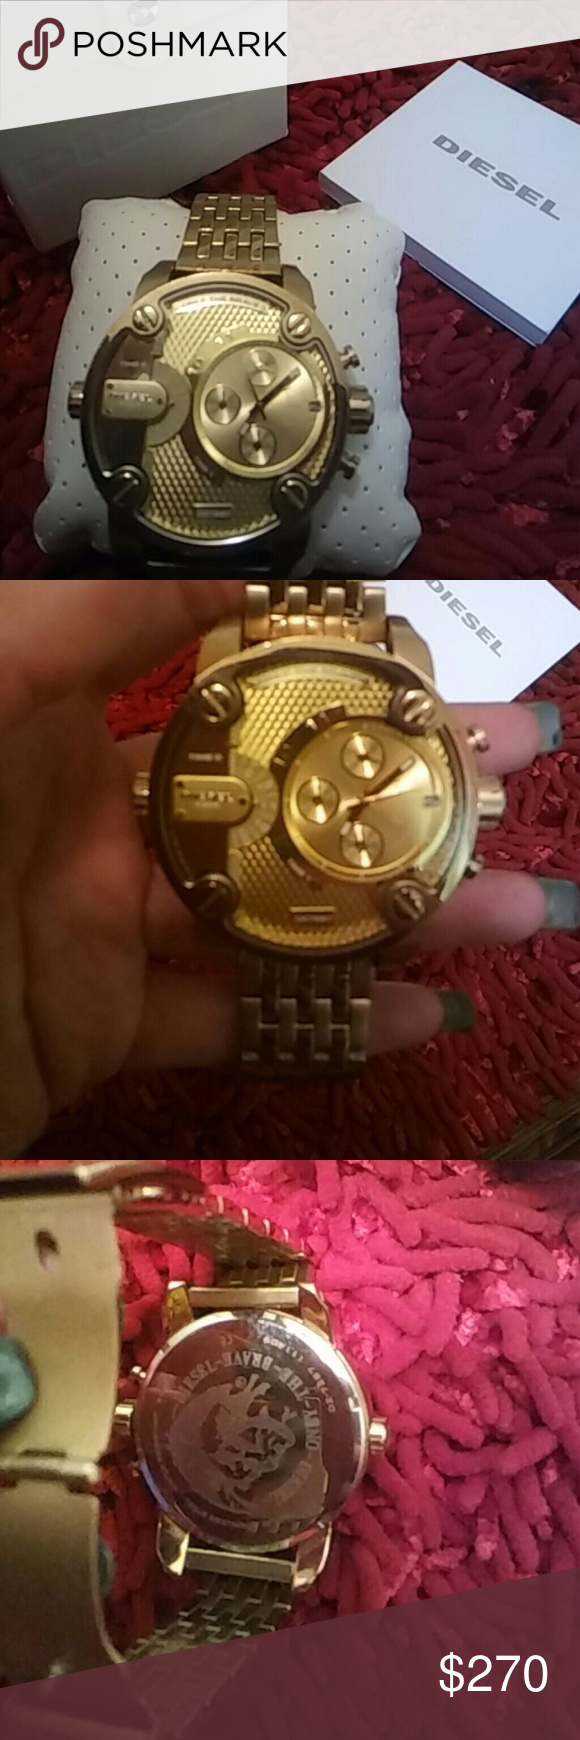 Diesel watch This is a mans diesel watch, Gold, sturdy beautiful watch. Very masculine presence. No trades! Comes with original box & watch pillow. Also have reciept proof. Reasonable offers accepted! Diesel Accessories Watches